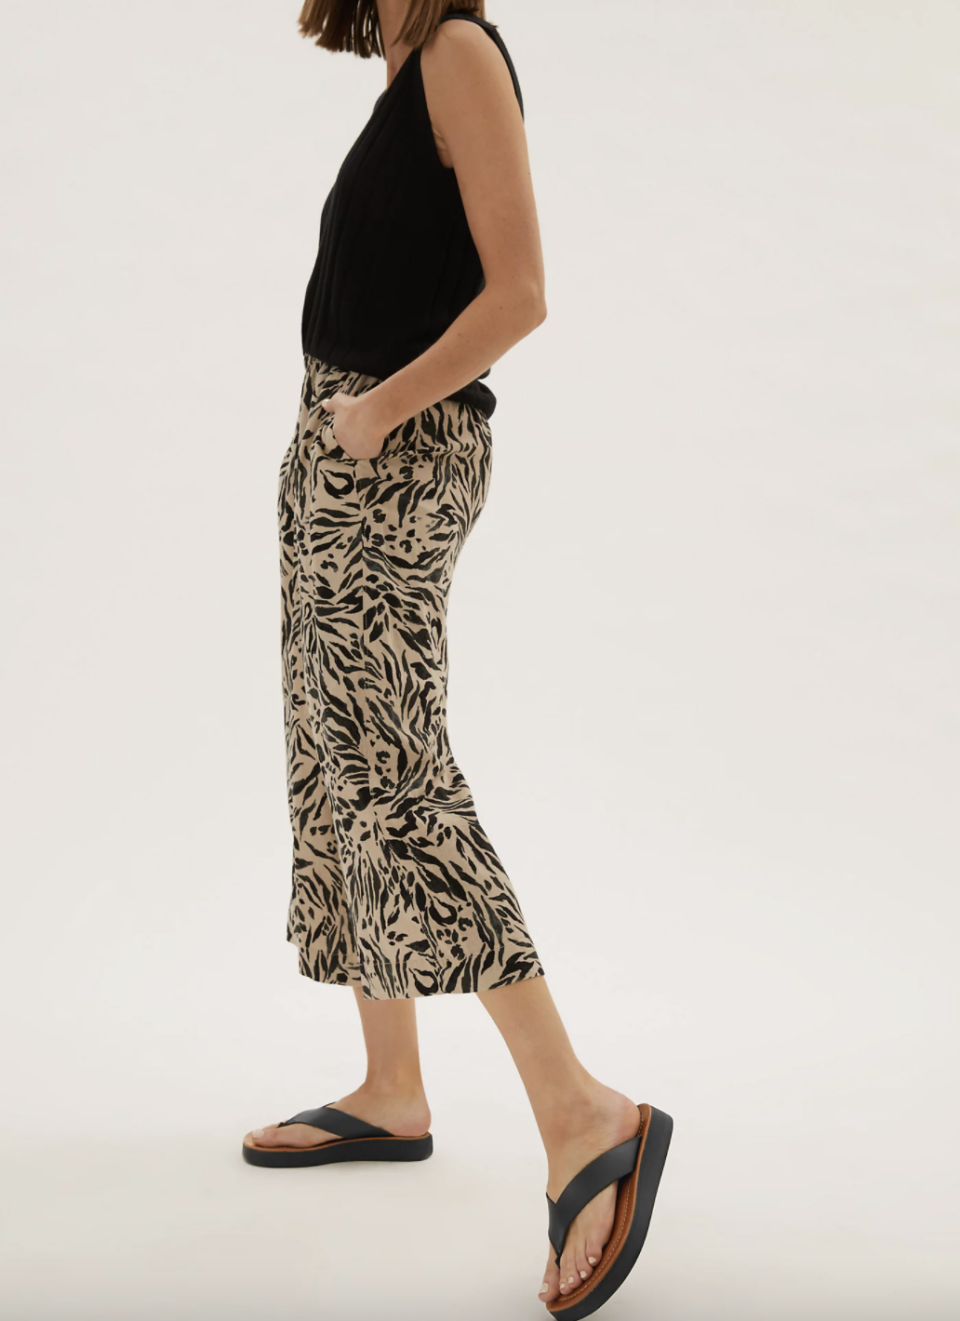 M&S' Flatform Flip Flops can be styled with jeans, shorts, dresses and skirts.  (Marks & Spencer)